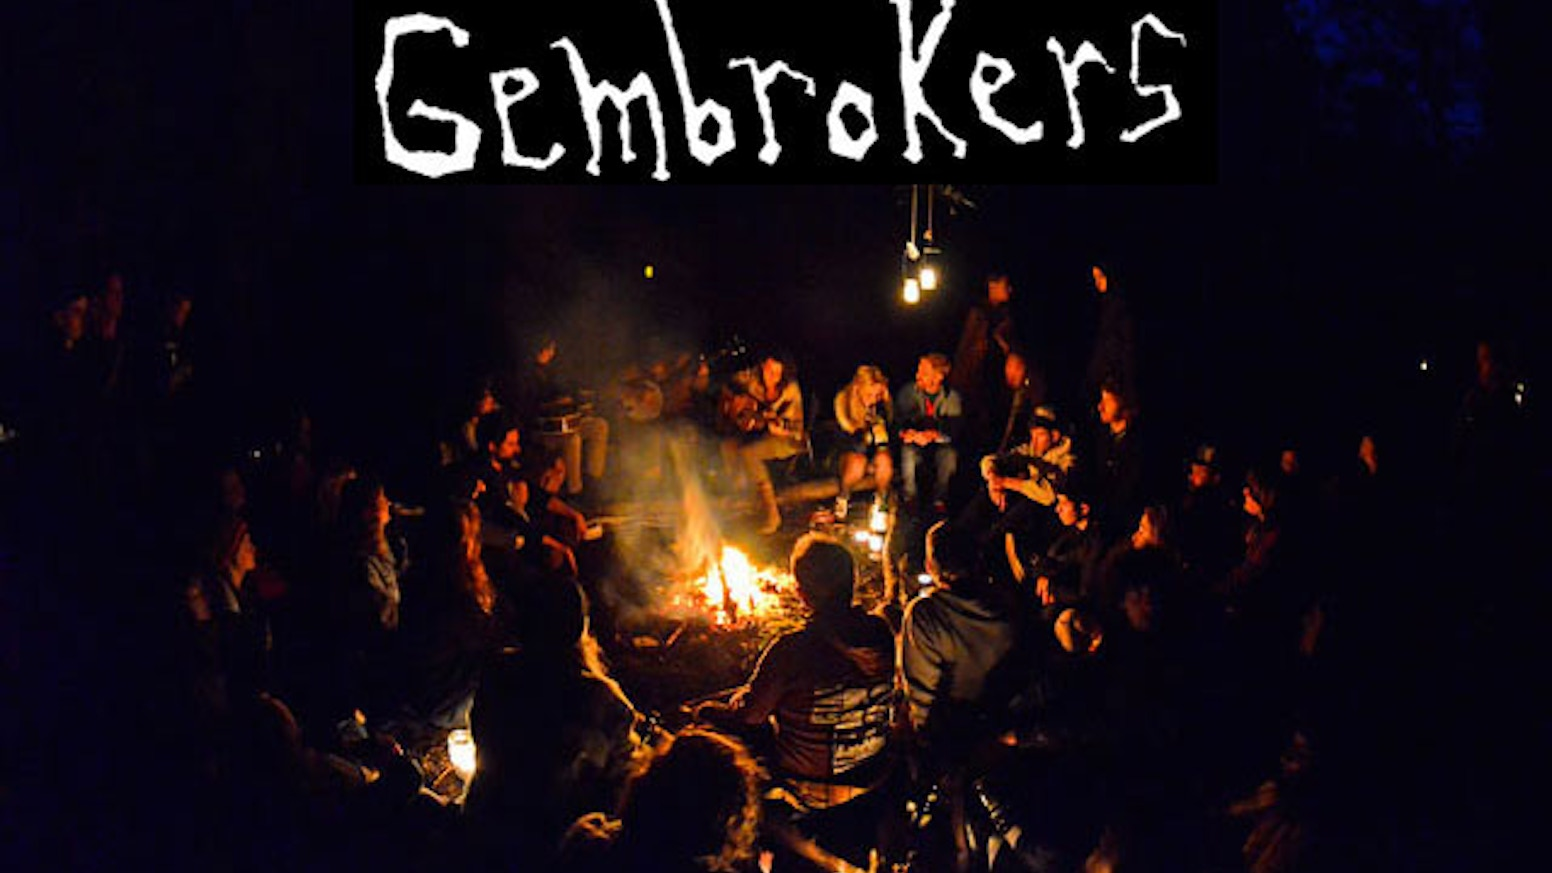 The Gembrokers new album: Bury the Sound by Gembrokers